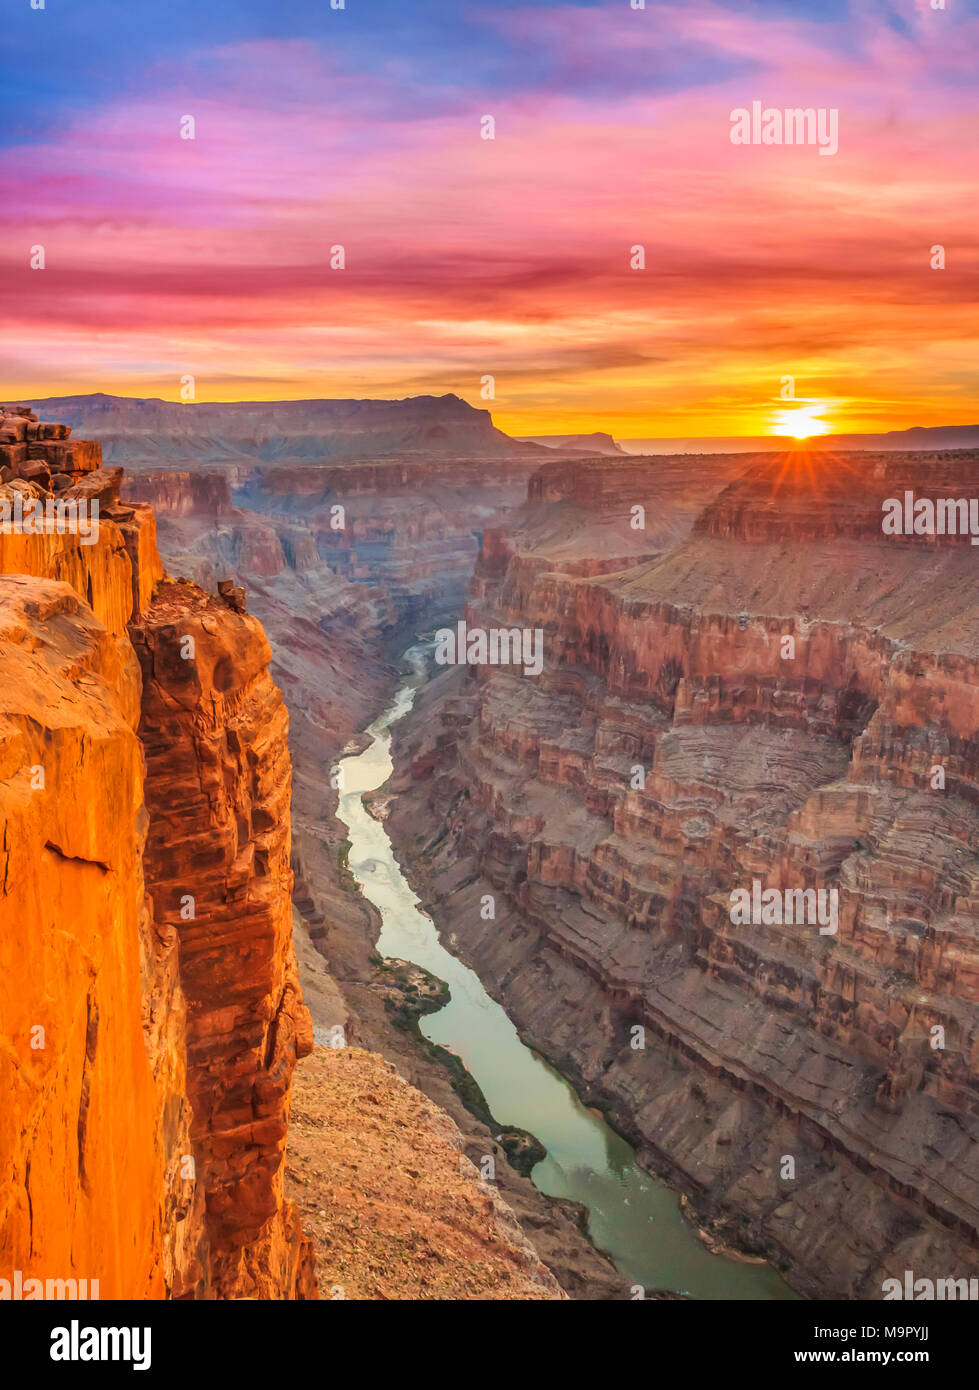 sunrise over the colorado river at toroweap overlook in grand canyon national park, arizona Stock Photo